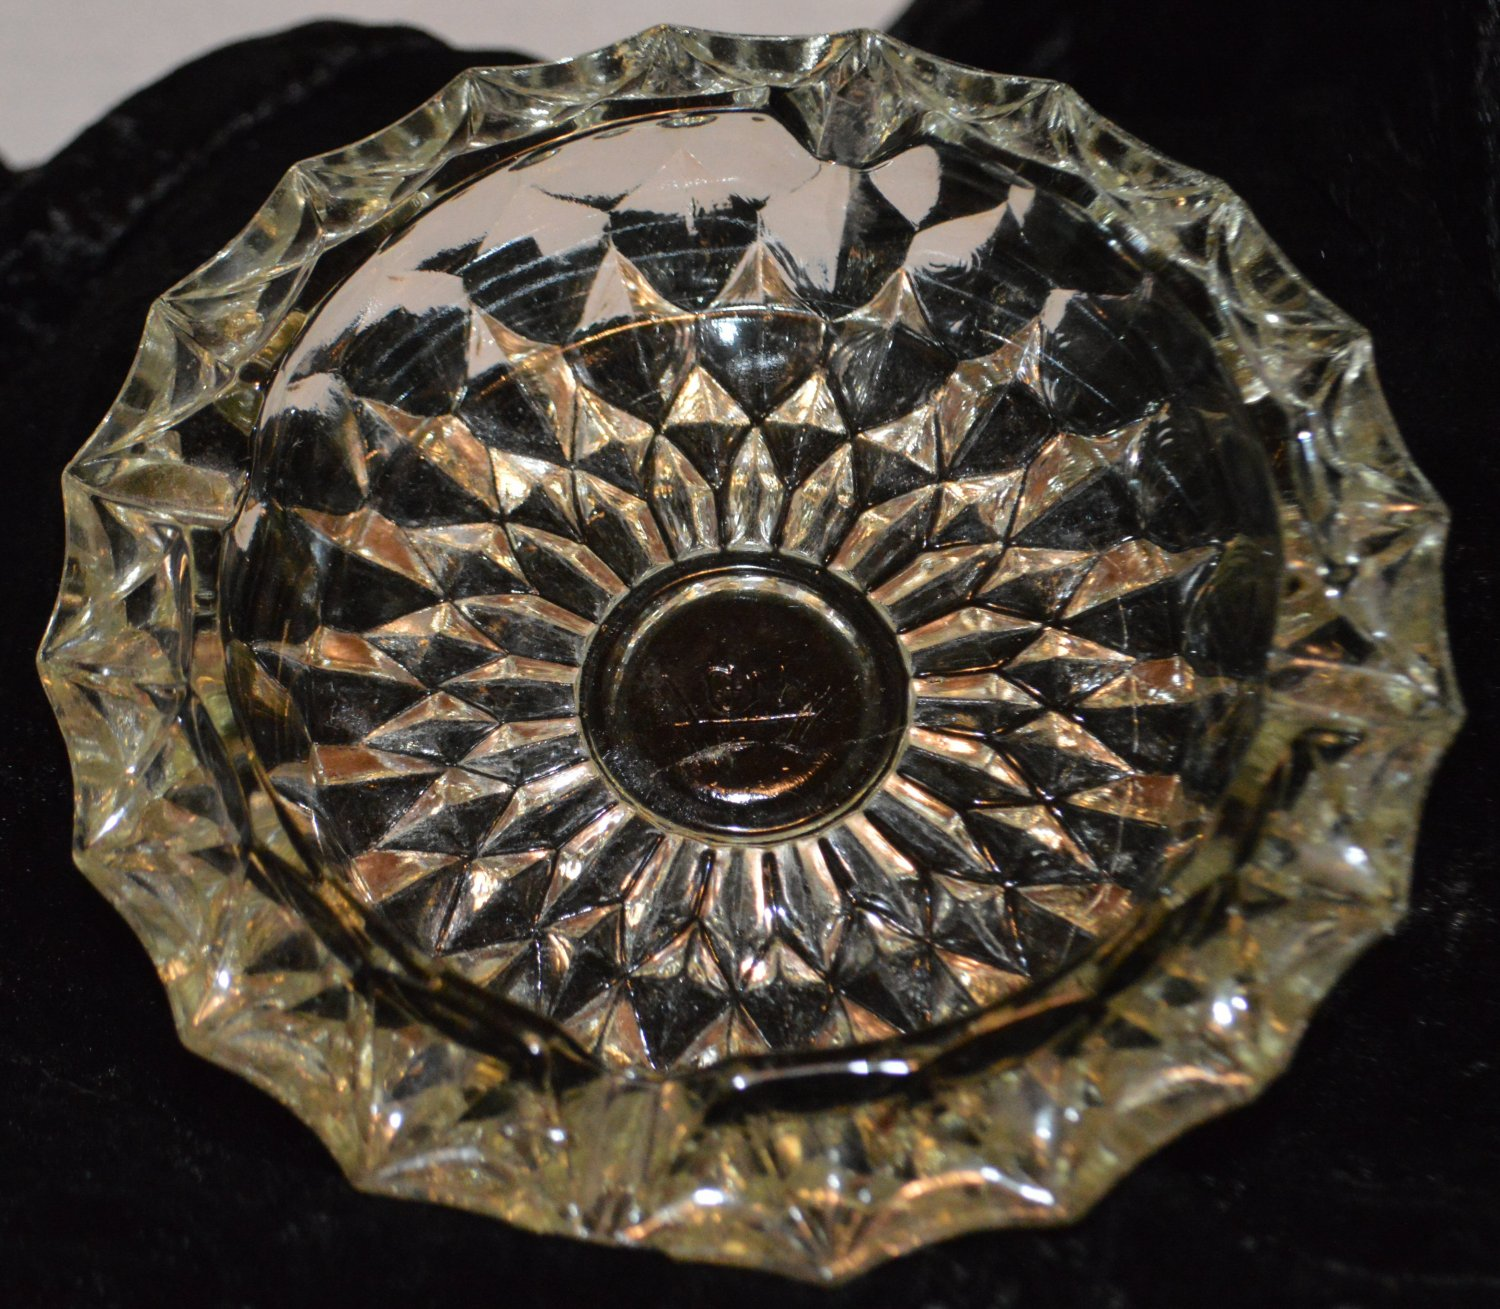 GW Crystal Glass Ash Tray - Other uses Nuts, Candy Trinkets Keys